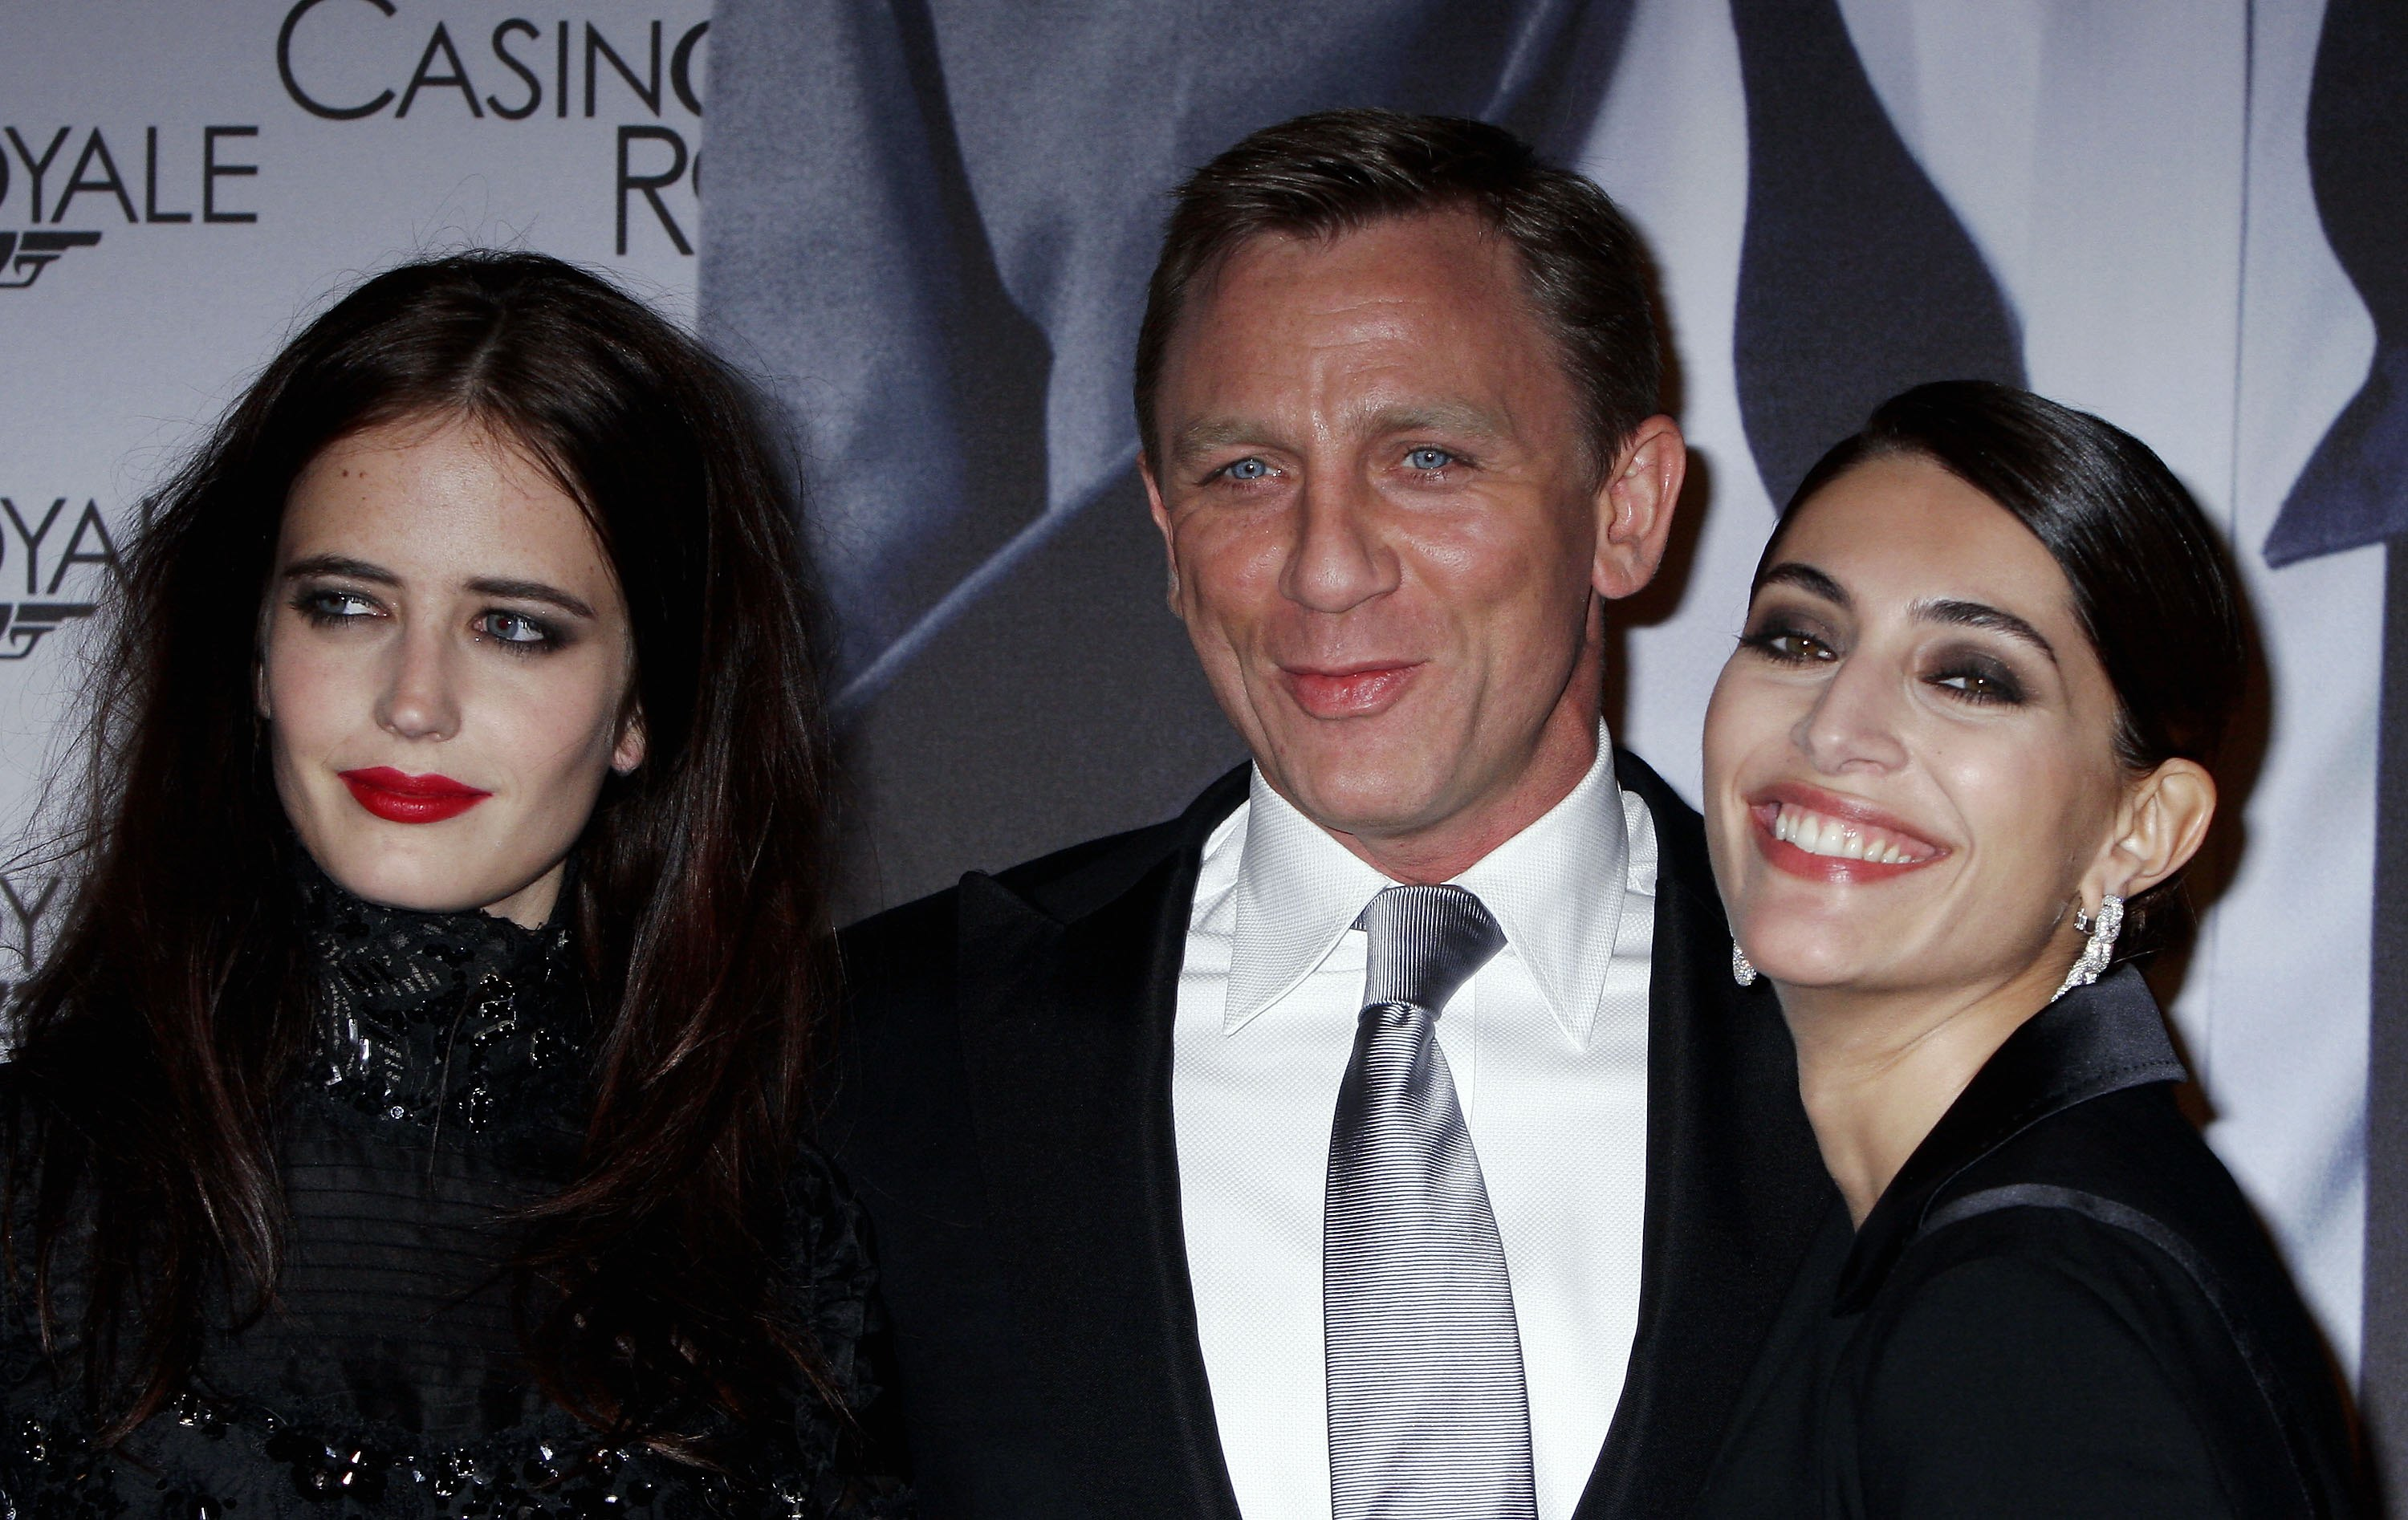 (L-R) actors Eva Green, Daniel Craig and Caterina Murino attend the Casino Royale french Premiere at the Grand Rex on November 17, 2006, in Paris, France. (Getty)